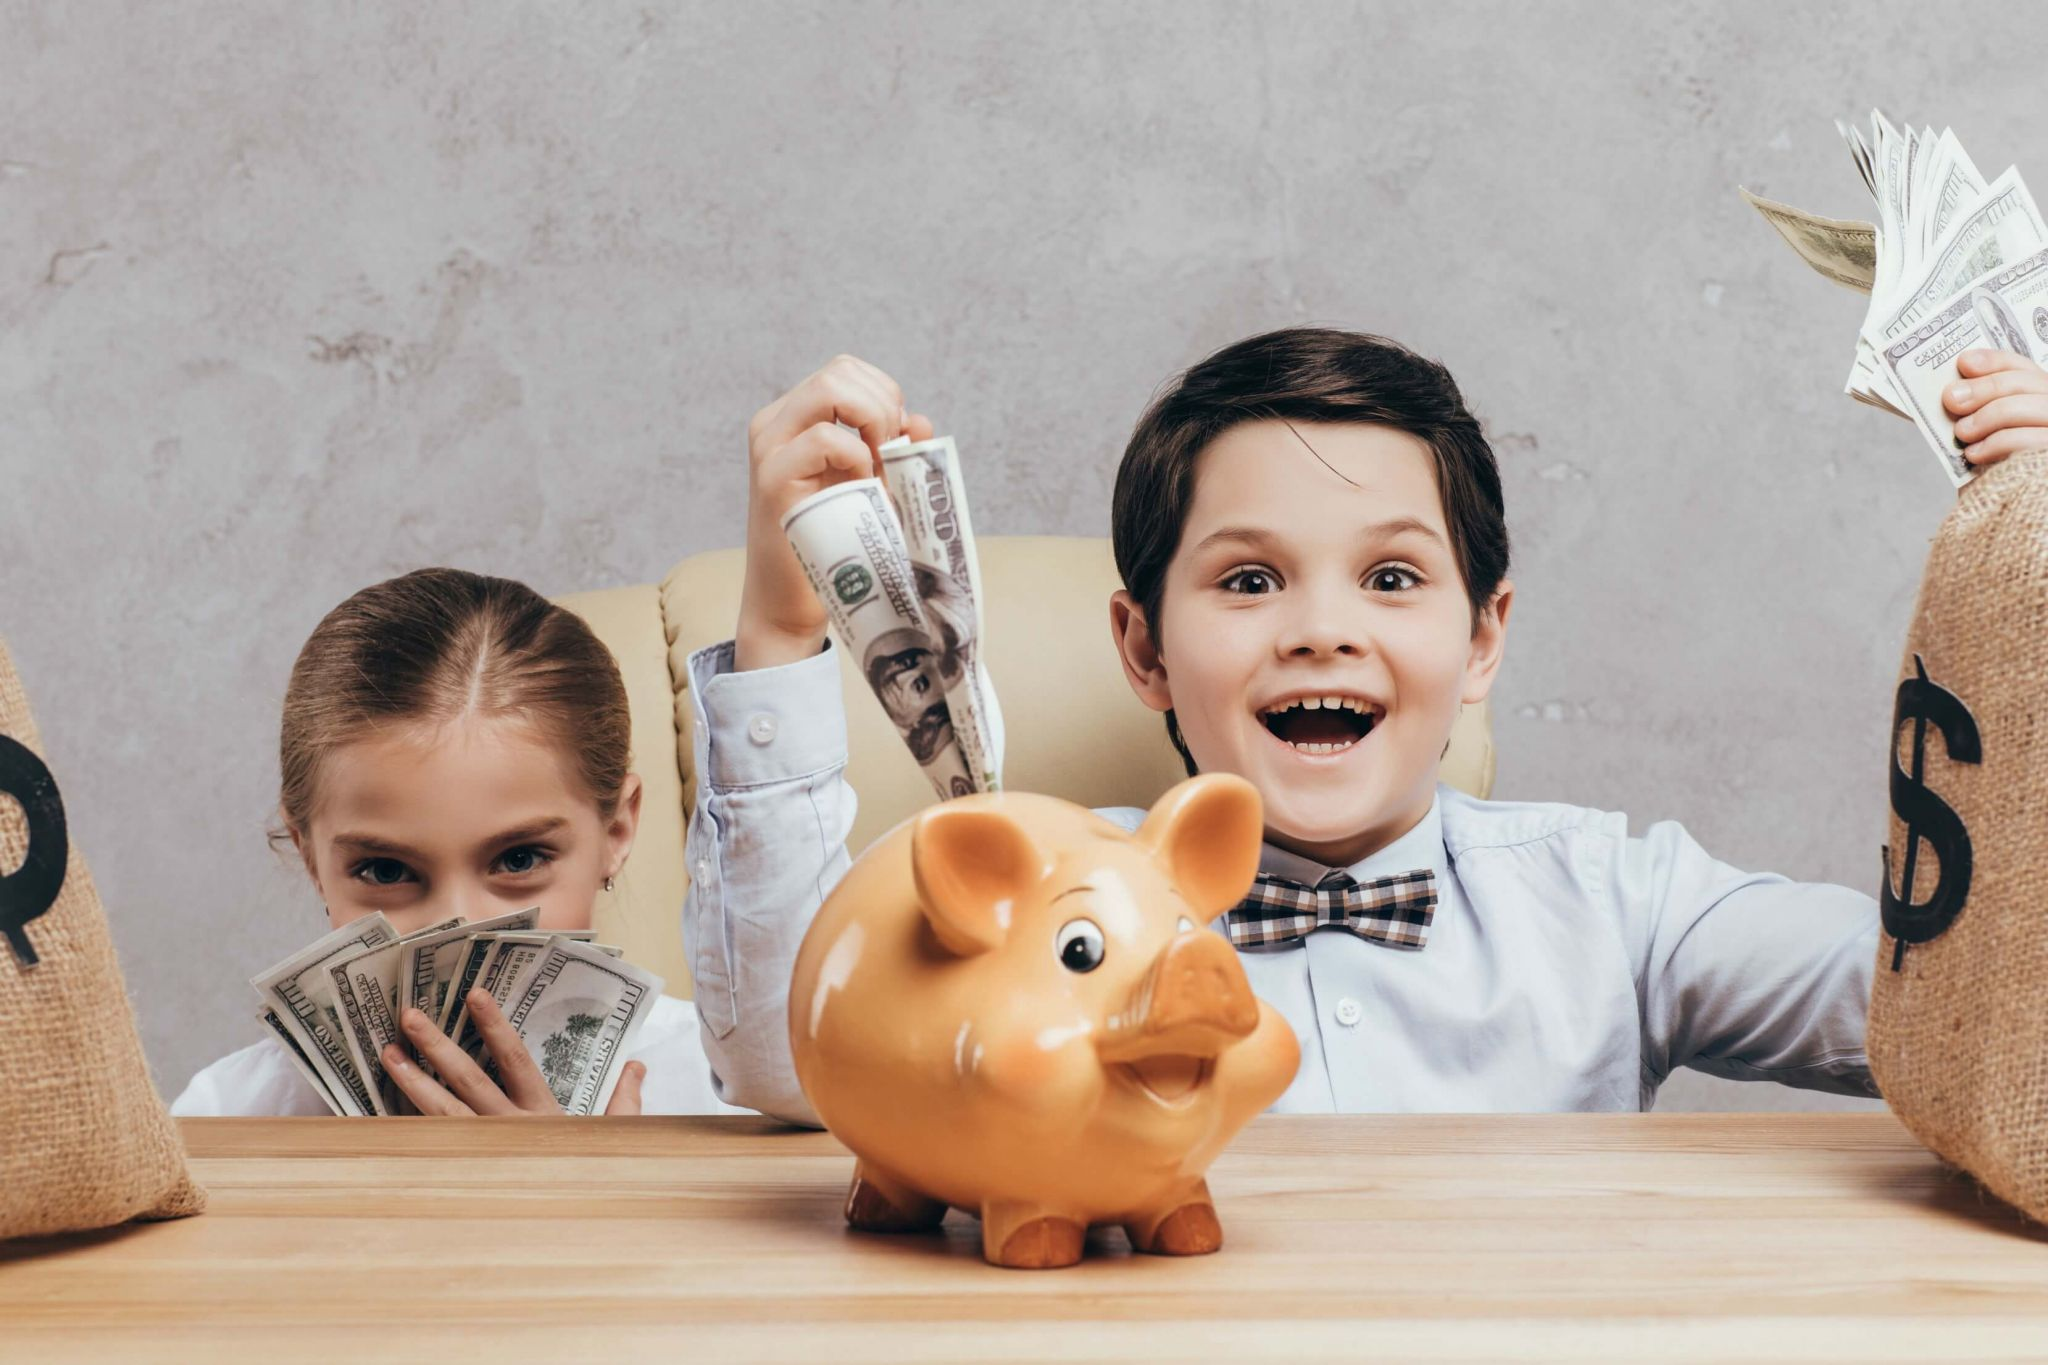 teaching financial literacy to kids - little girl and boy playing with wads of dollars and a piggy bank